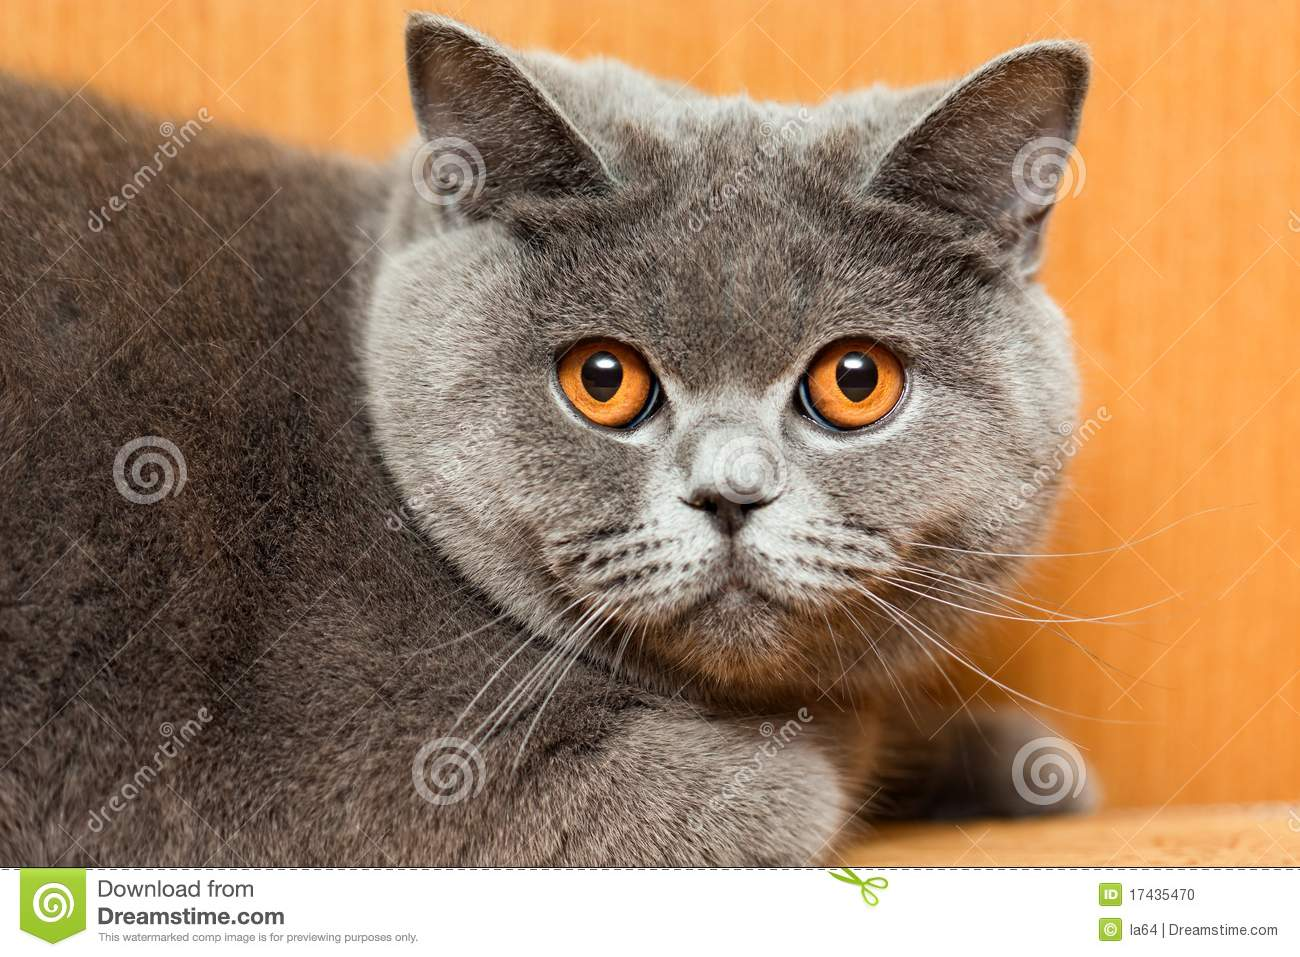 Cat Animal Stock Photo Image 17435470